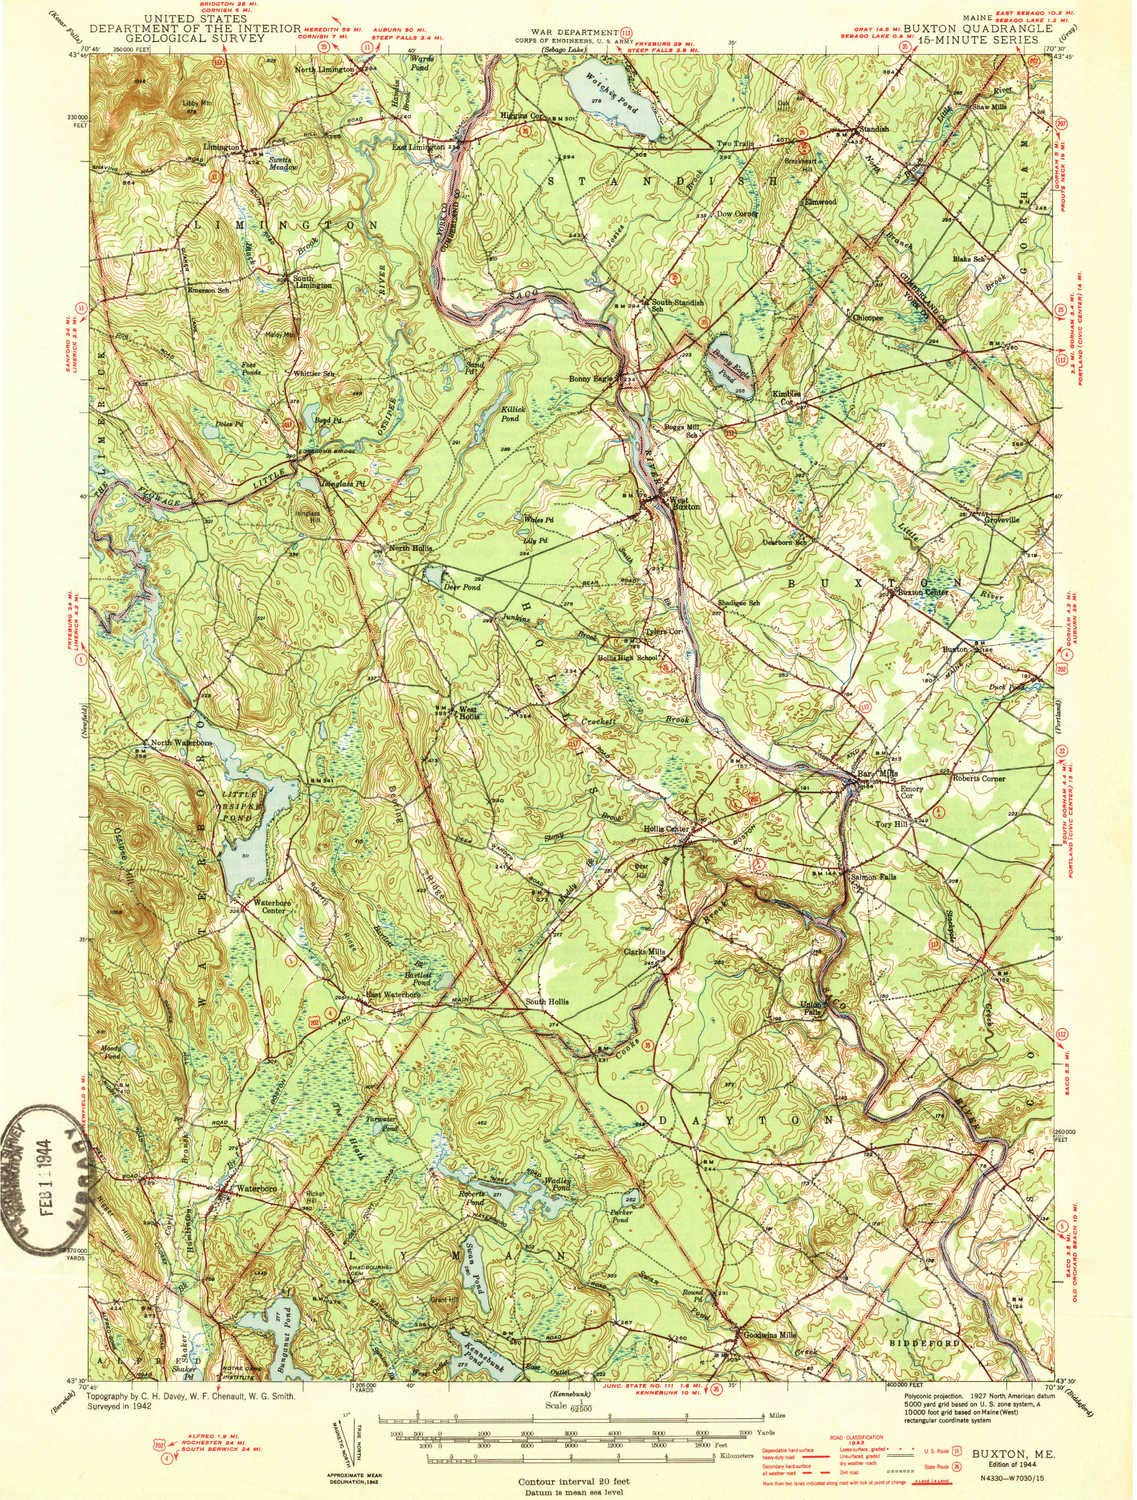 Amazon.com: YellowMaps Buxton ME topo map, 1:62500 Scale, 15 ... on map of arlington ma, map of harrisville nh, map of stewartstown nh, map of landaff nh, map of marlborough nh, map of concord nh, map of south hadley ma, map of worcester ma, map of framingham ma, map of methuen ma, map of rochester nh, map of epping nh, map of hillsboro nh, map of kingston nh, map of goshen nh, map of stratford nh, map of strafford nh, map of merrimack nh, map of newport nh, map of alton nh,